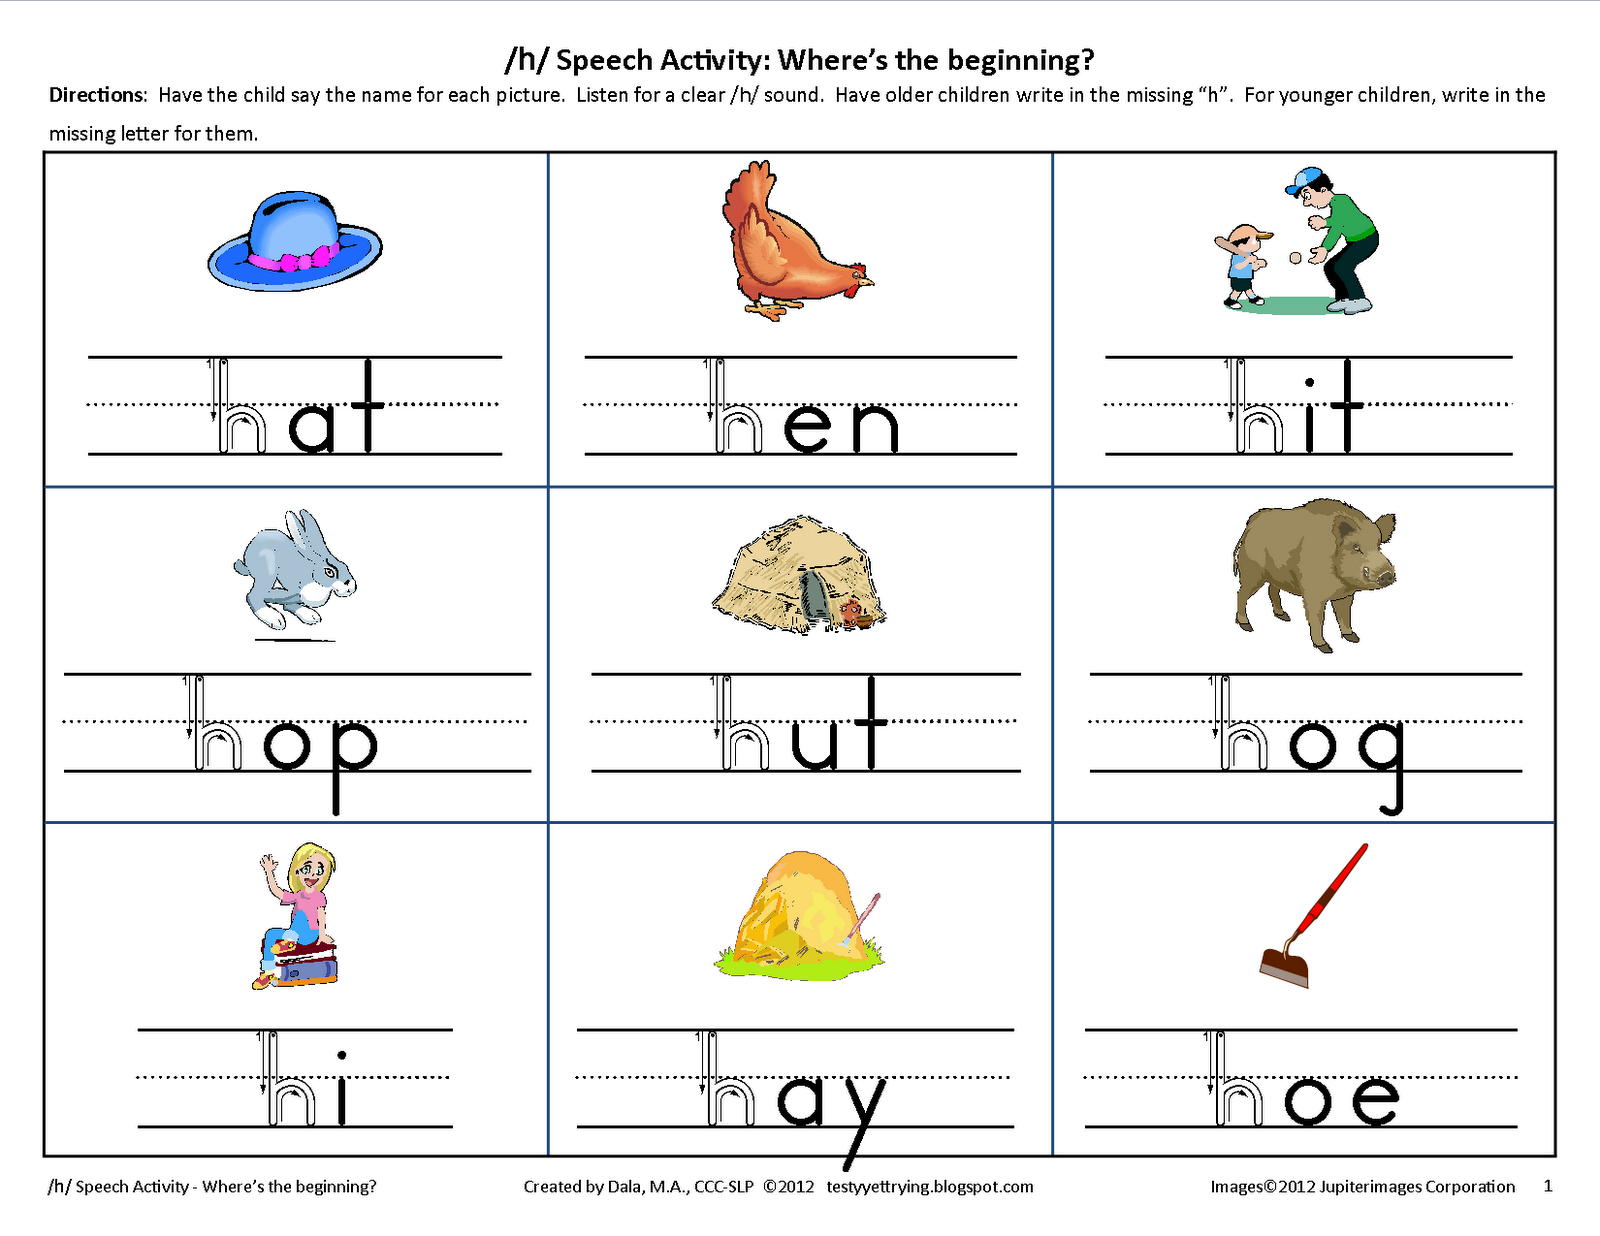 Weirdmailus  Pleasing Testy Yet Trying Initial H Speech Worksheet With Fair Make Classroom Teachers Happy Reinforce Phonics And Handwriting And Practice Speech All At The Same Time With Easy On The Eye Drawing Conclusions Worksheet Th Grade Also Free Printable Spanish Worksheets For Beginners In Addition Beginning Phonics Worksheets And Third Person Point Of View Worksheets As Well As Stress Management Worksheets For Adults Additionally Letter Tracing Worksheets For Prek From Testyyettryingblogspotcom With Weirdmailus  Fair Testy Yet Trying Initial H Speech Worksheet With Easy On The Eye Make Classroom Teachers Happy Reinforce Phonics And Handwriting And Practice Speech All At The Same Time And Pleasing Drawing Conclusions Worksheet Th Grade Also Free Printable Spanish Worksheets For Beginners In Addition Beginning Phonics Worksheets From Testyyettryingblogspotcom